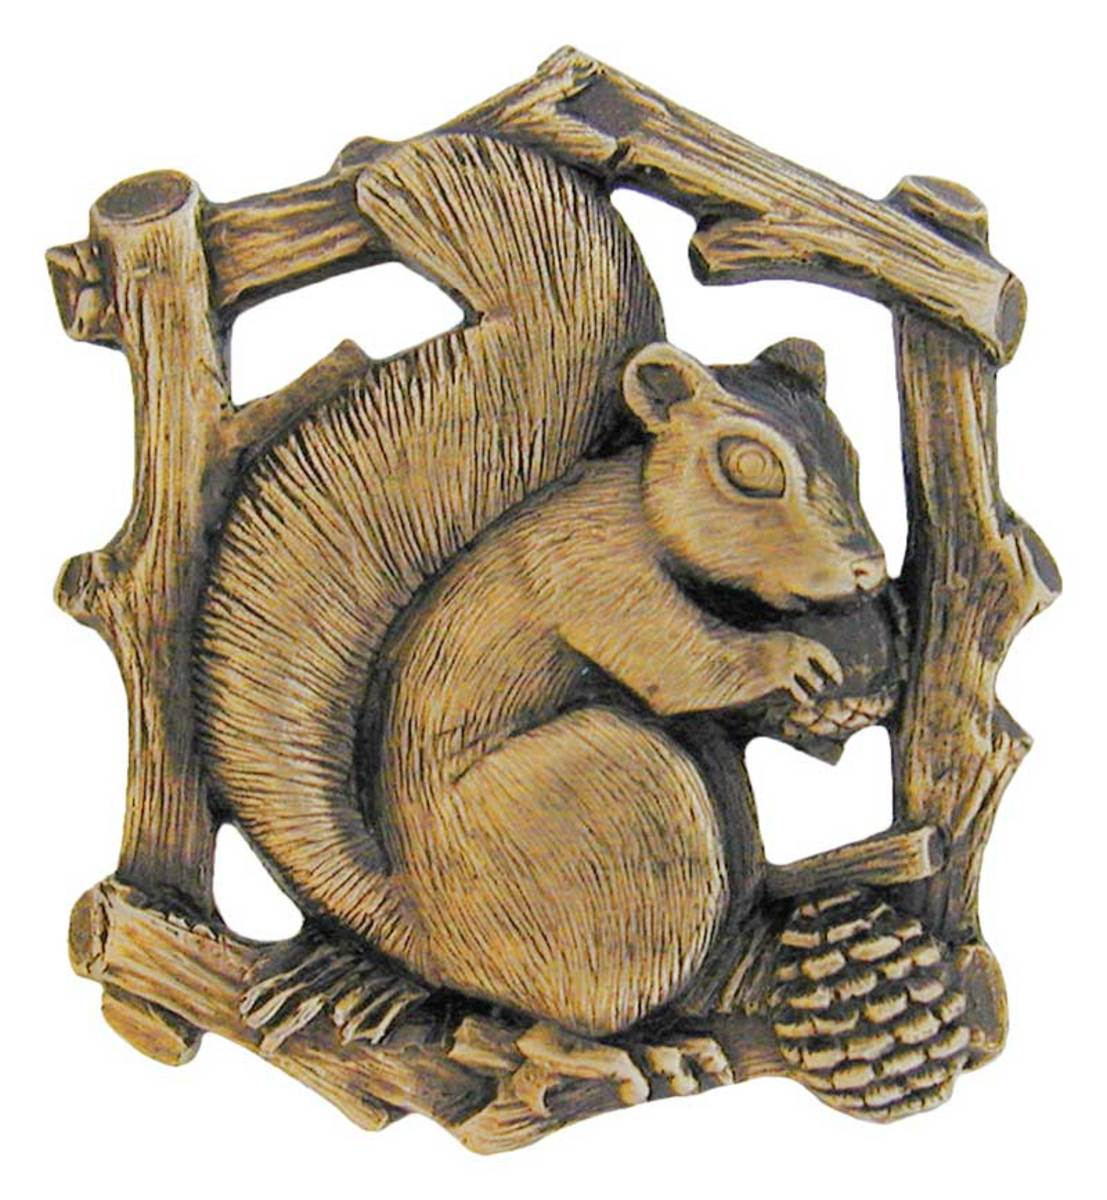 The Squirrel knob is from Notting Hill Decorative Hardware.